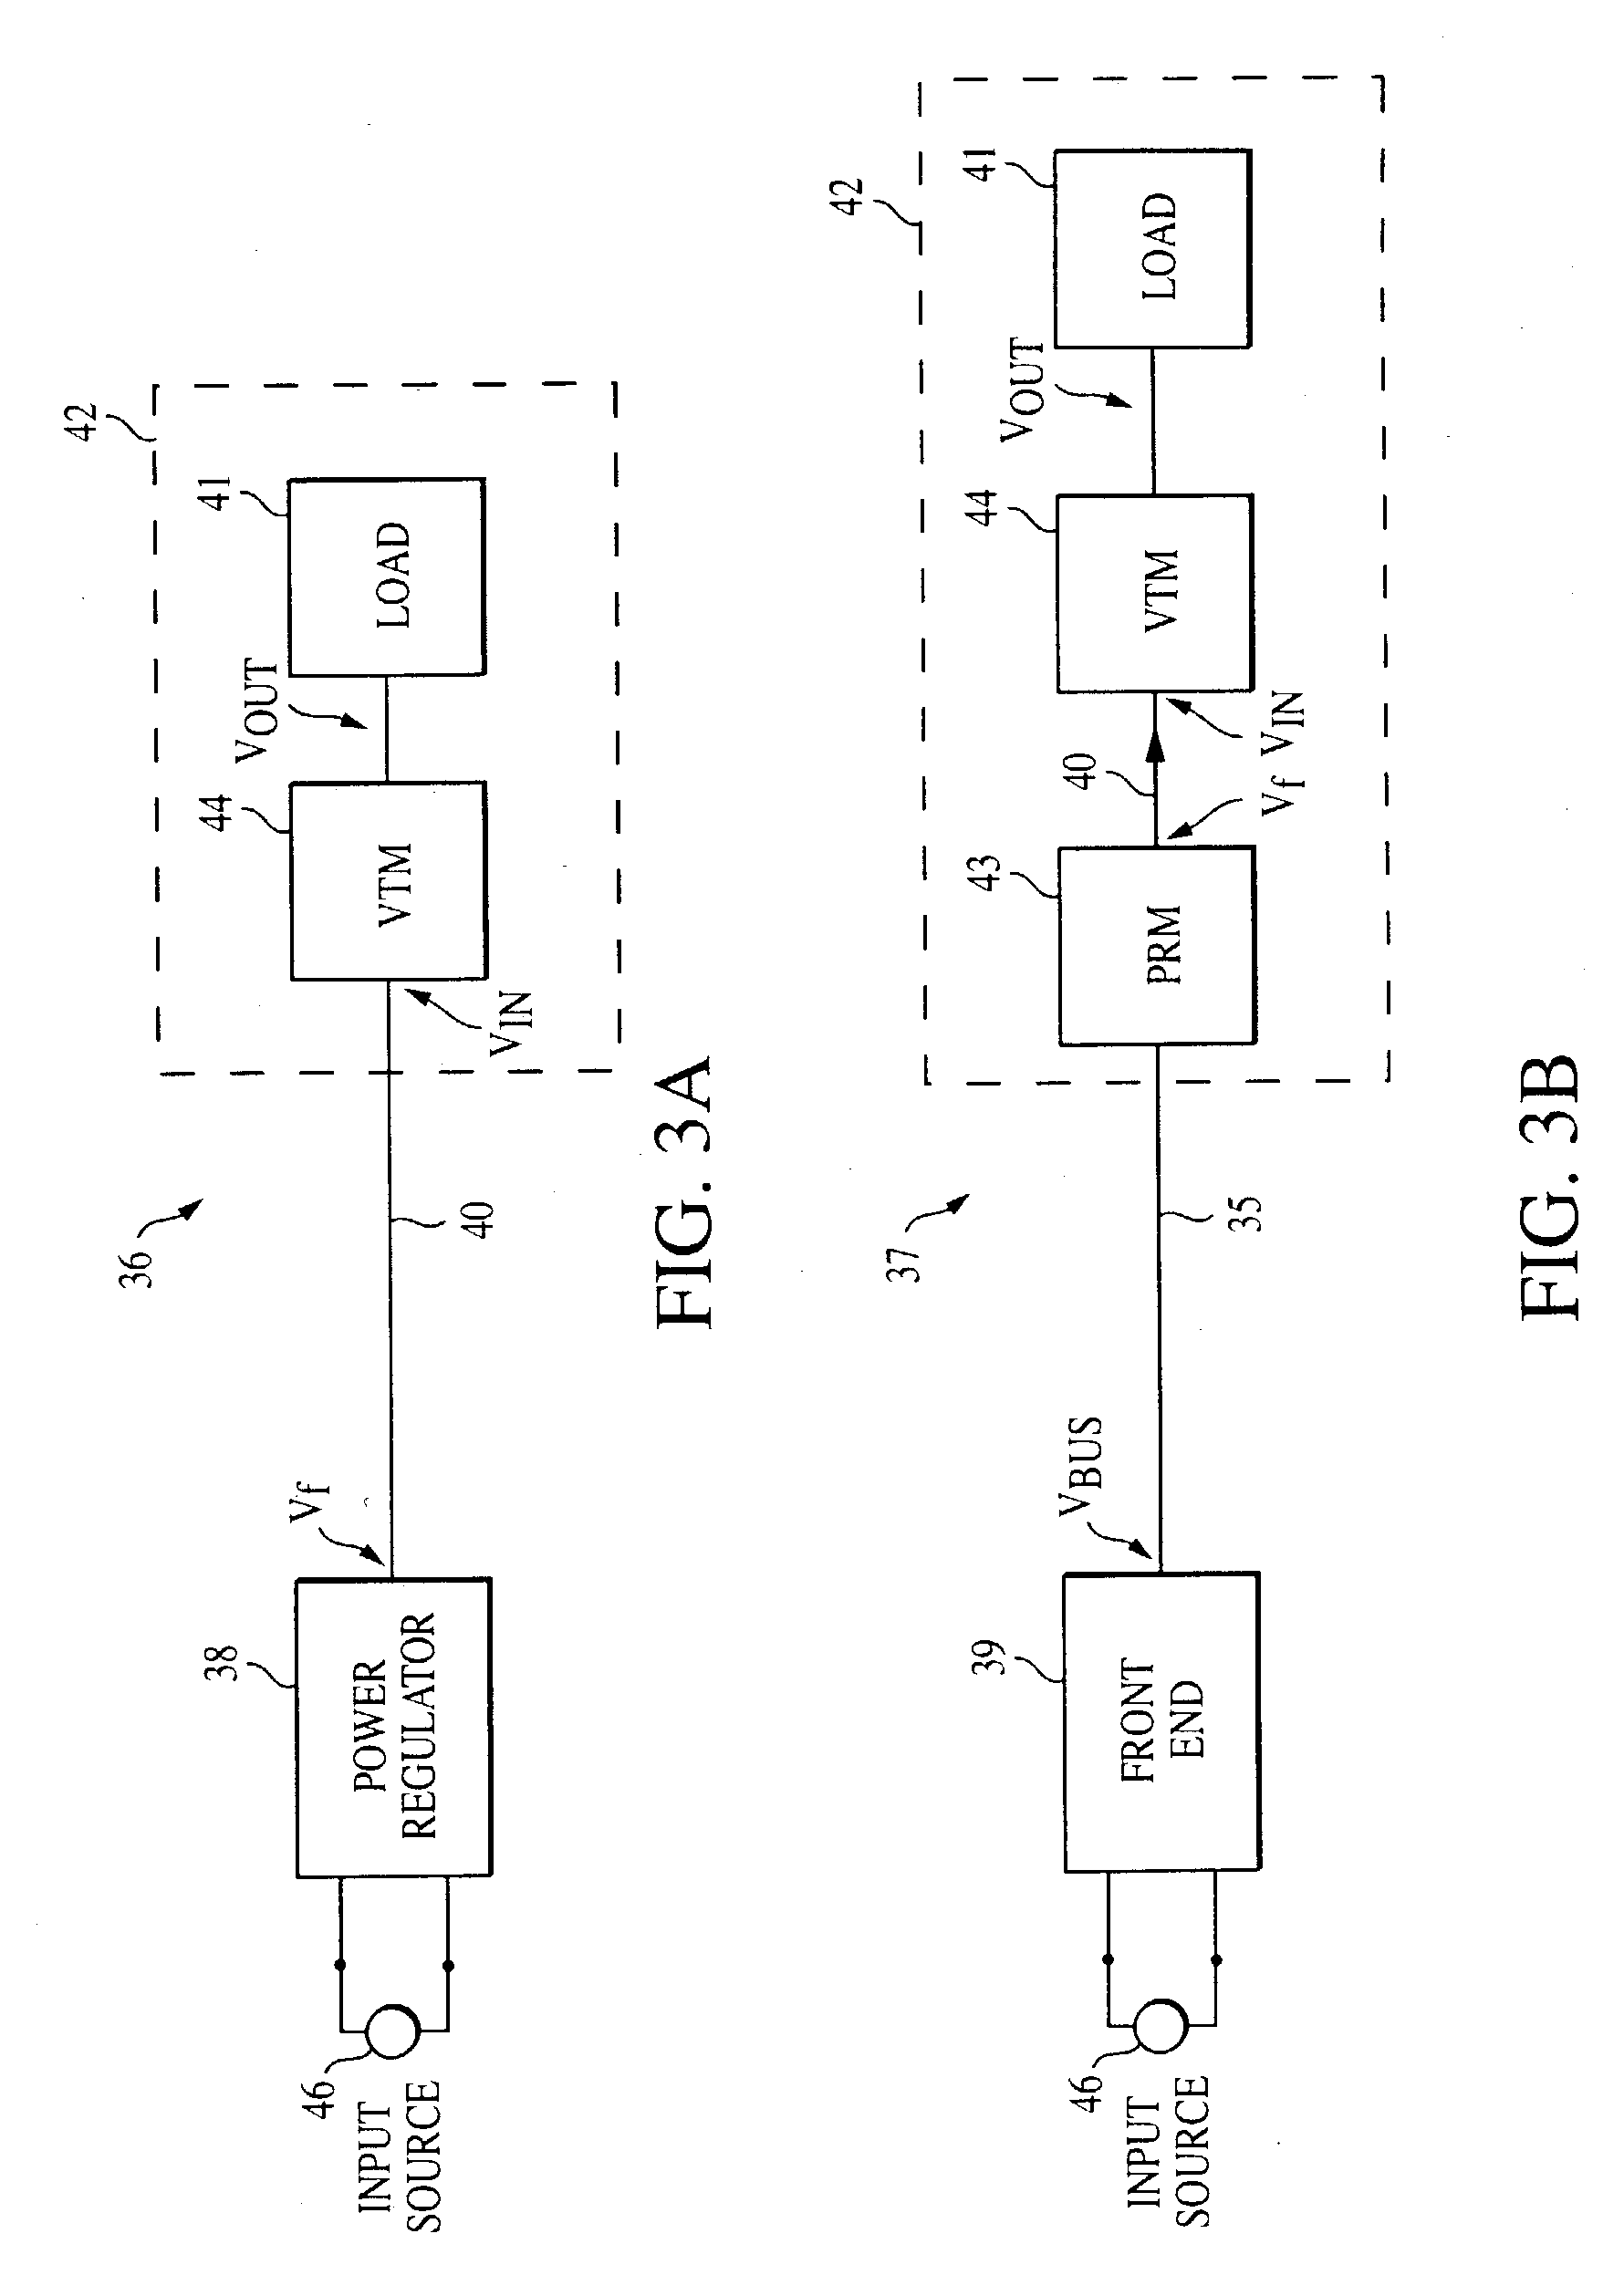 Patent Us20030227280 Factorized Power Architecture With Point Of Vacuum Tube Schematics Se At20 417a Amplifier Drawing